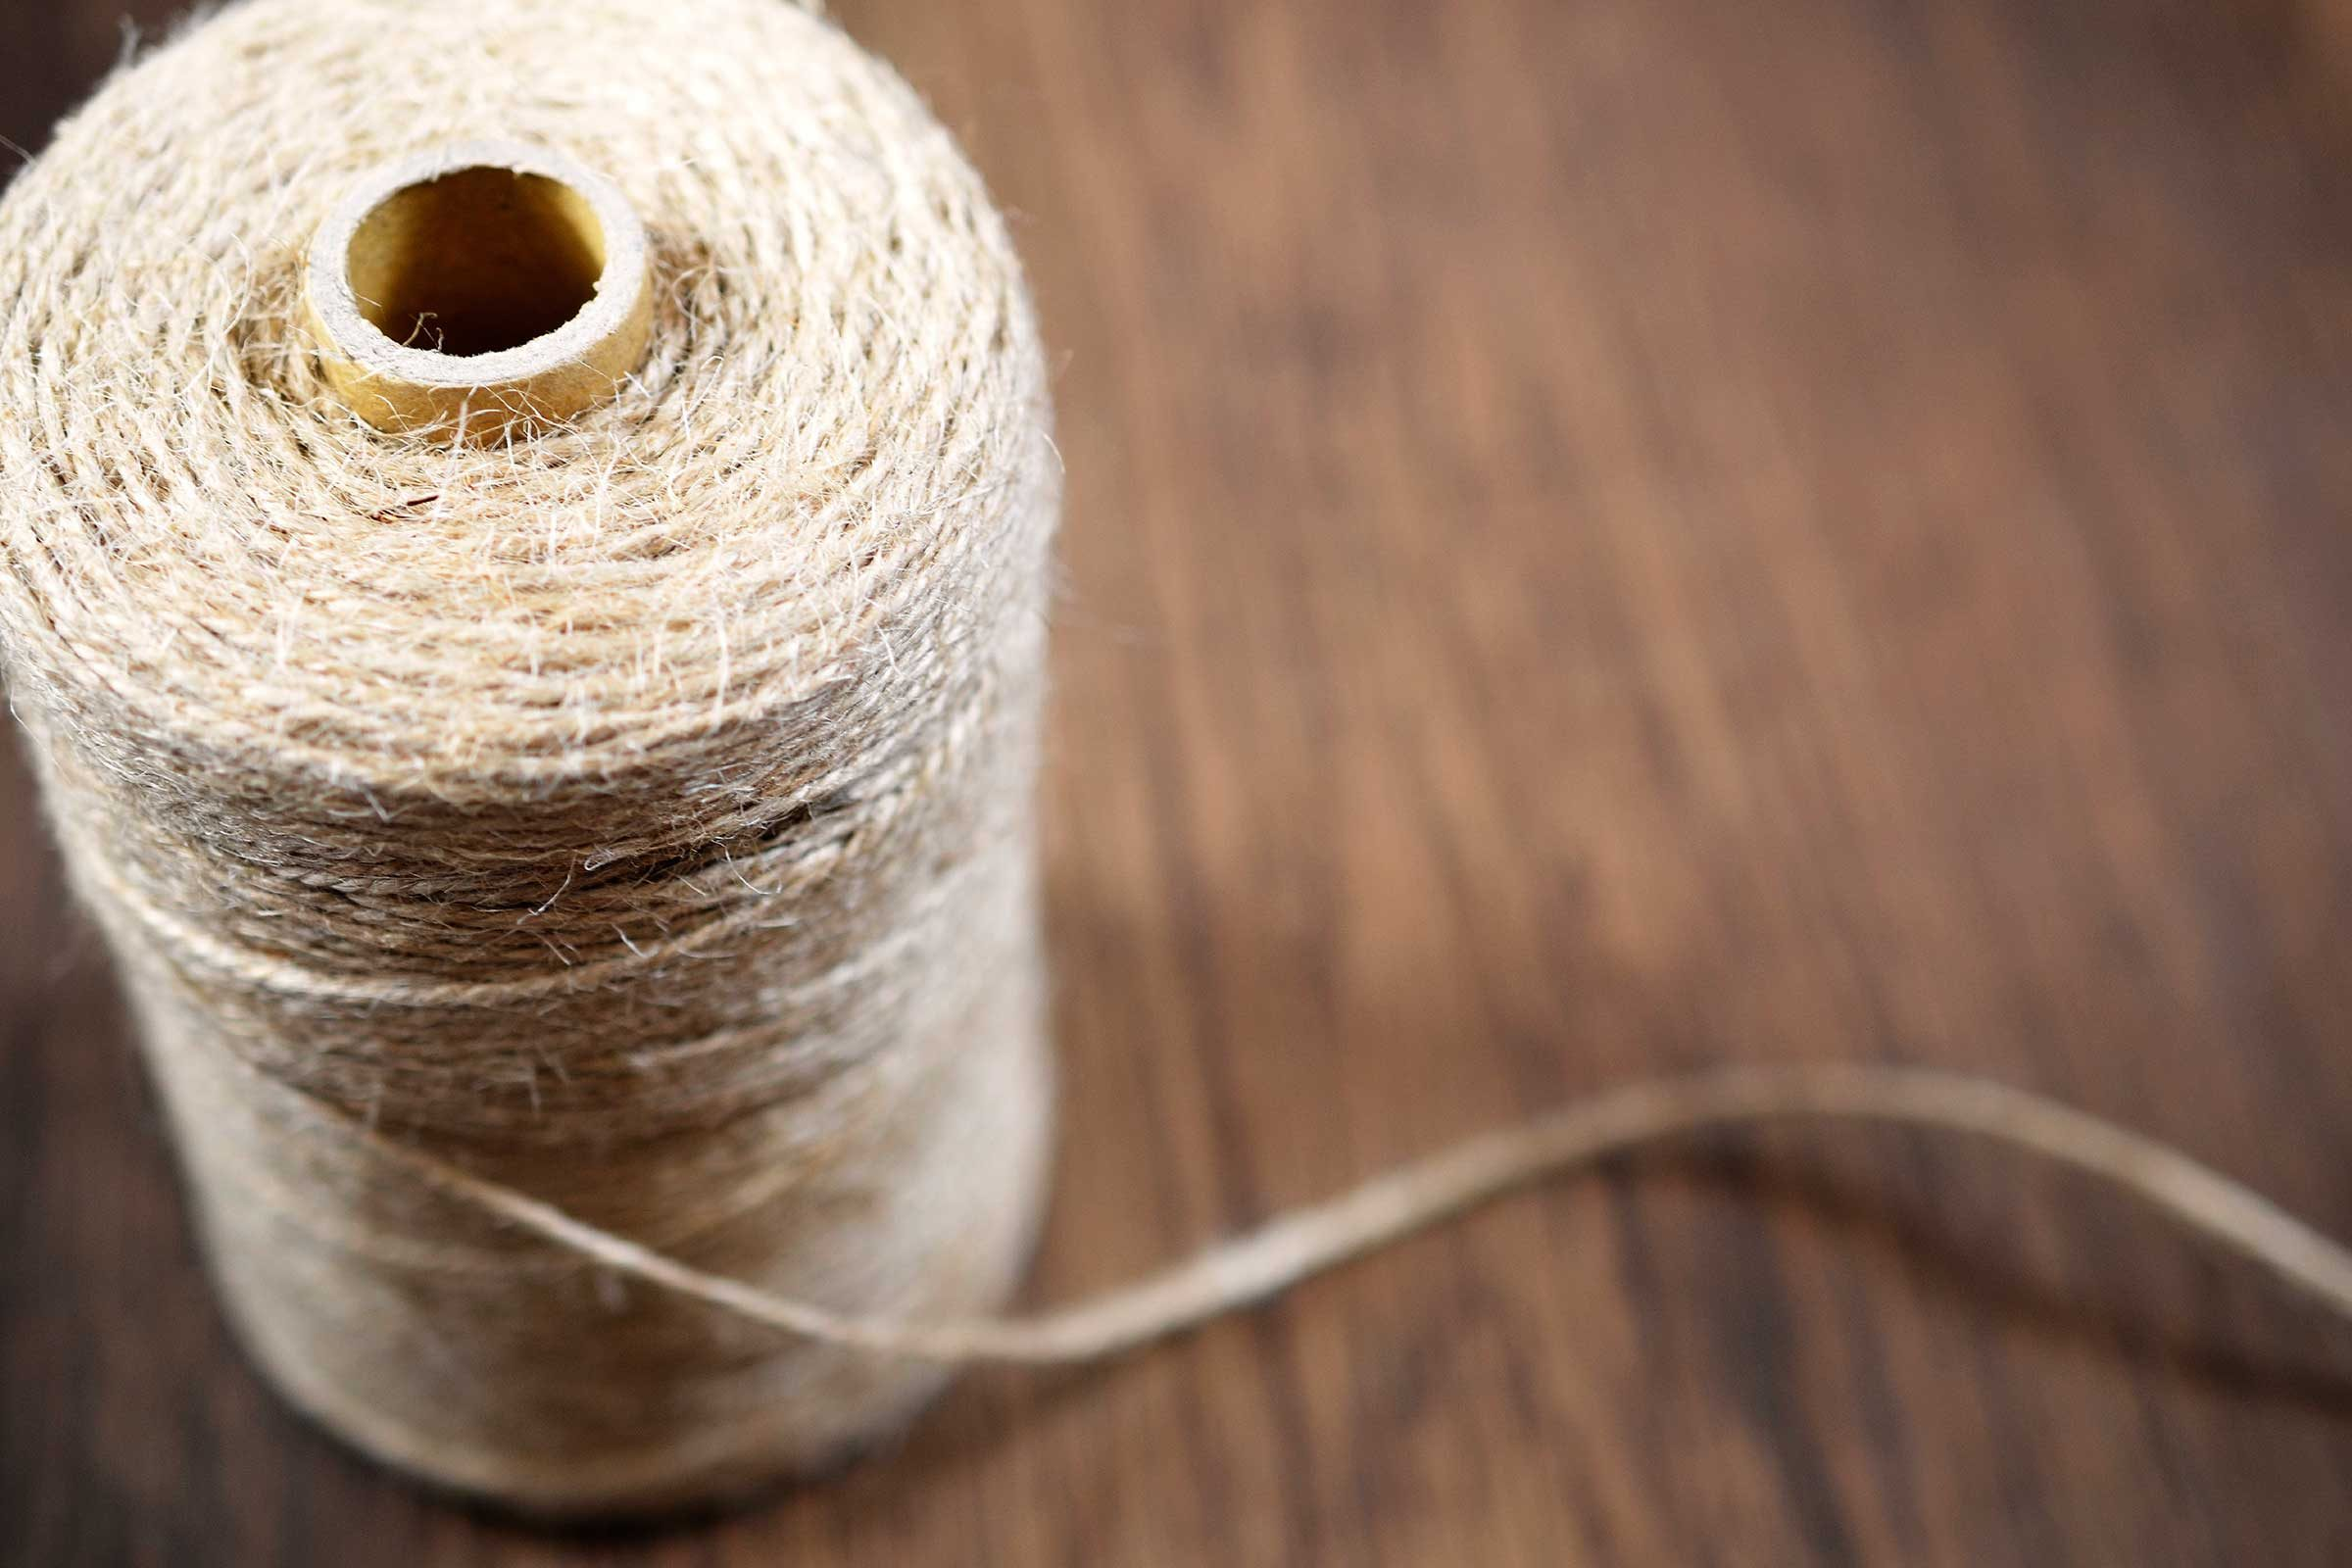 A spool of string.